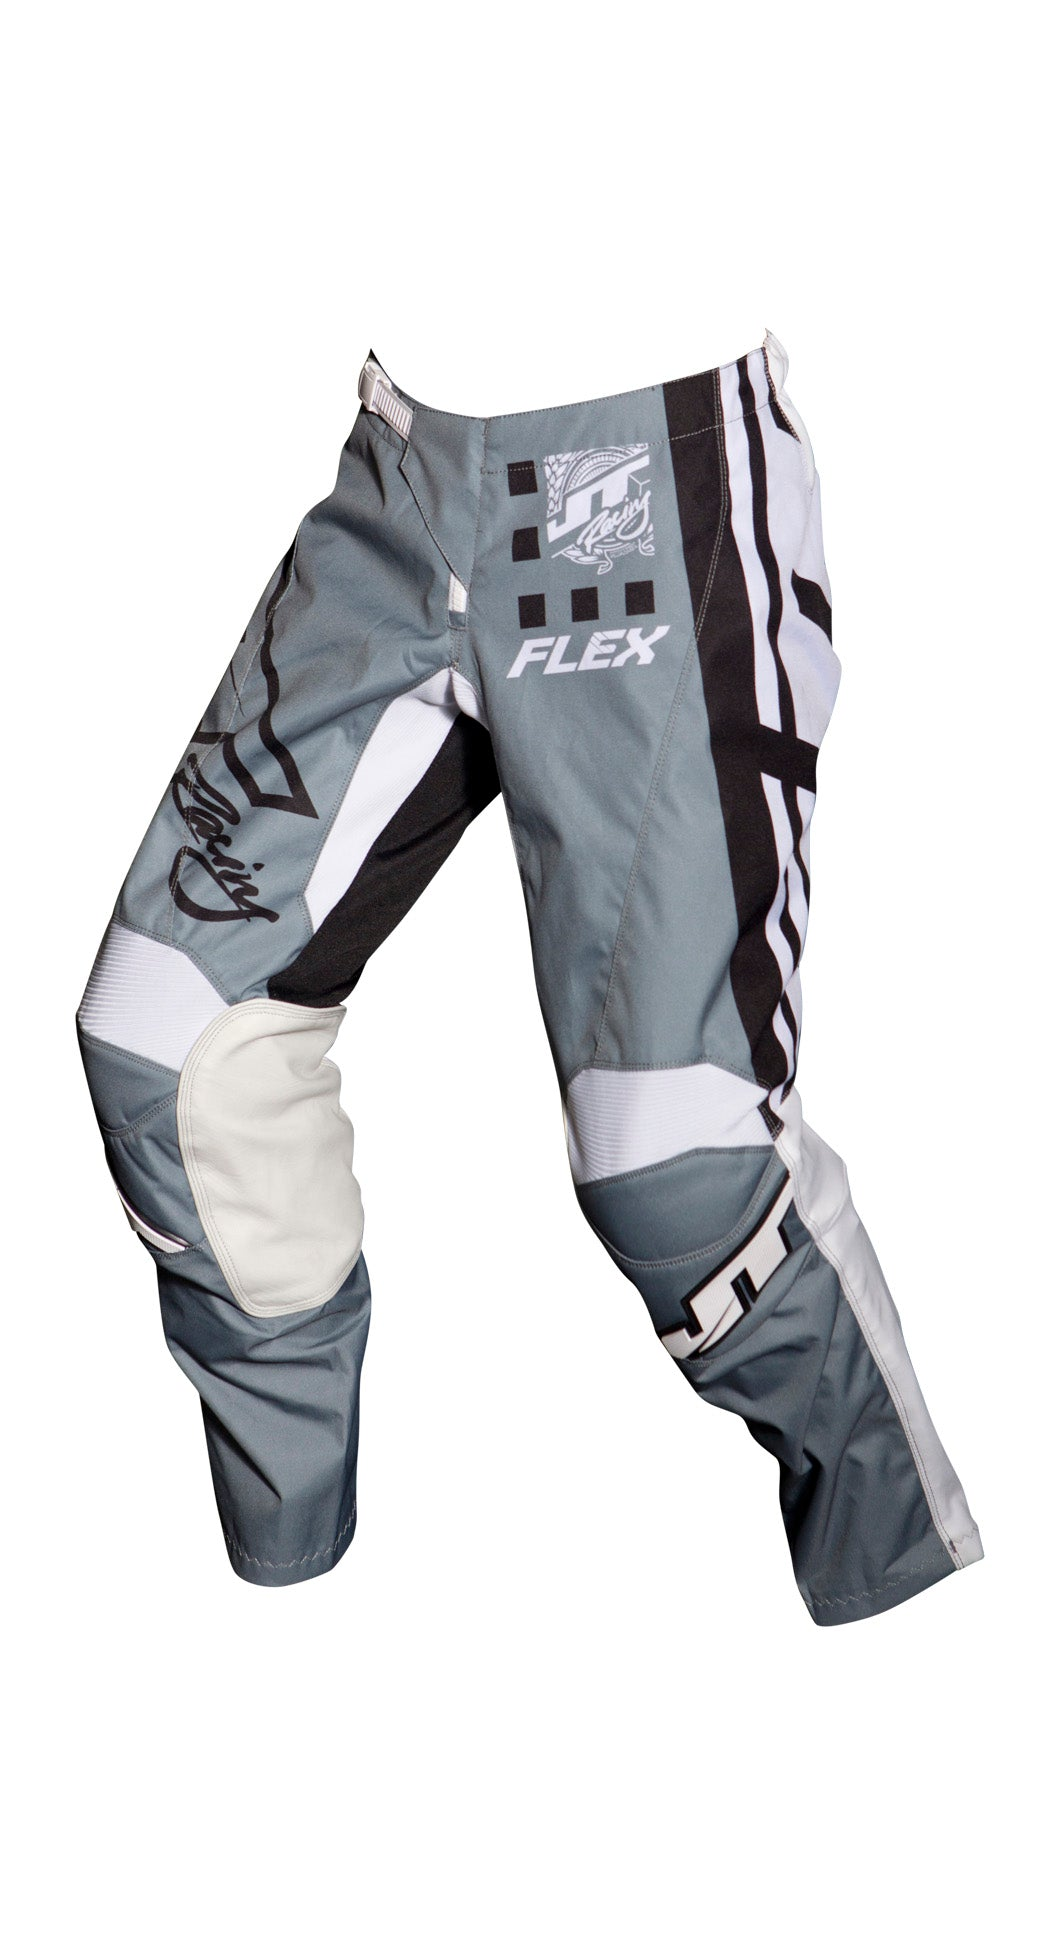 JT RACING USA Flex ExBox Pants, Grey/Black